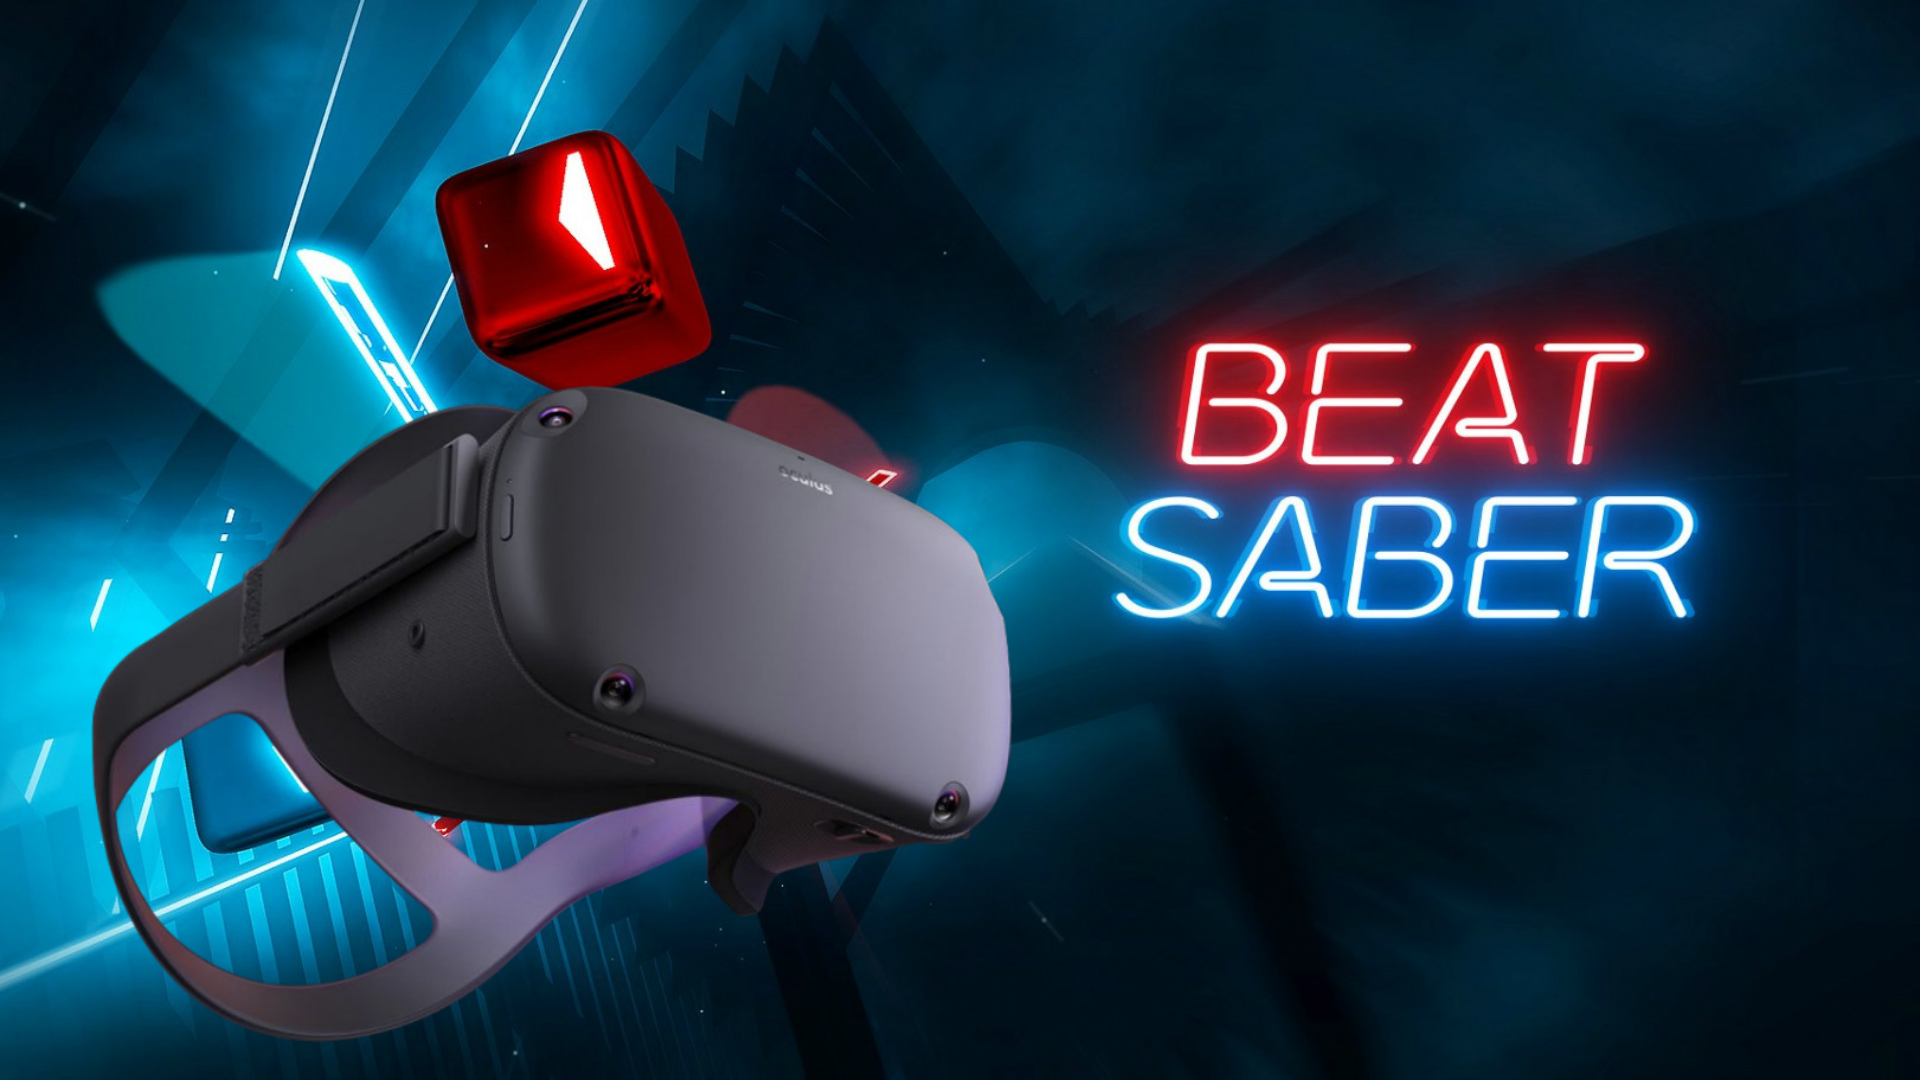 GDC 2019 Rewind: Hands-On With 'Beat Saber' for Oculus Quest